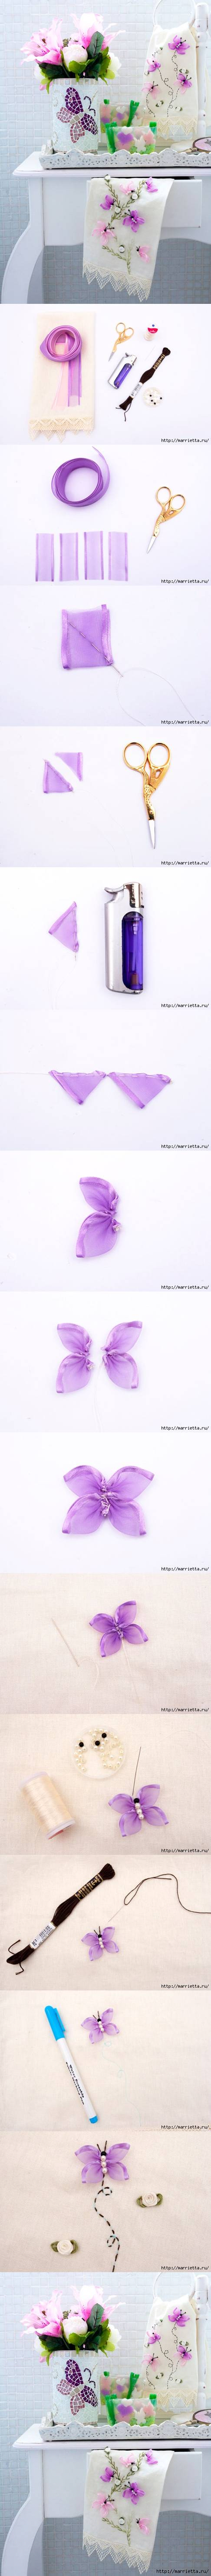 How To Make Butterfly Hand Ribbon Embroidery Step By Step Diy